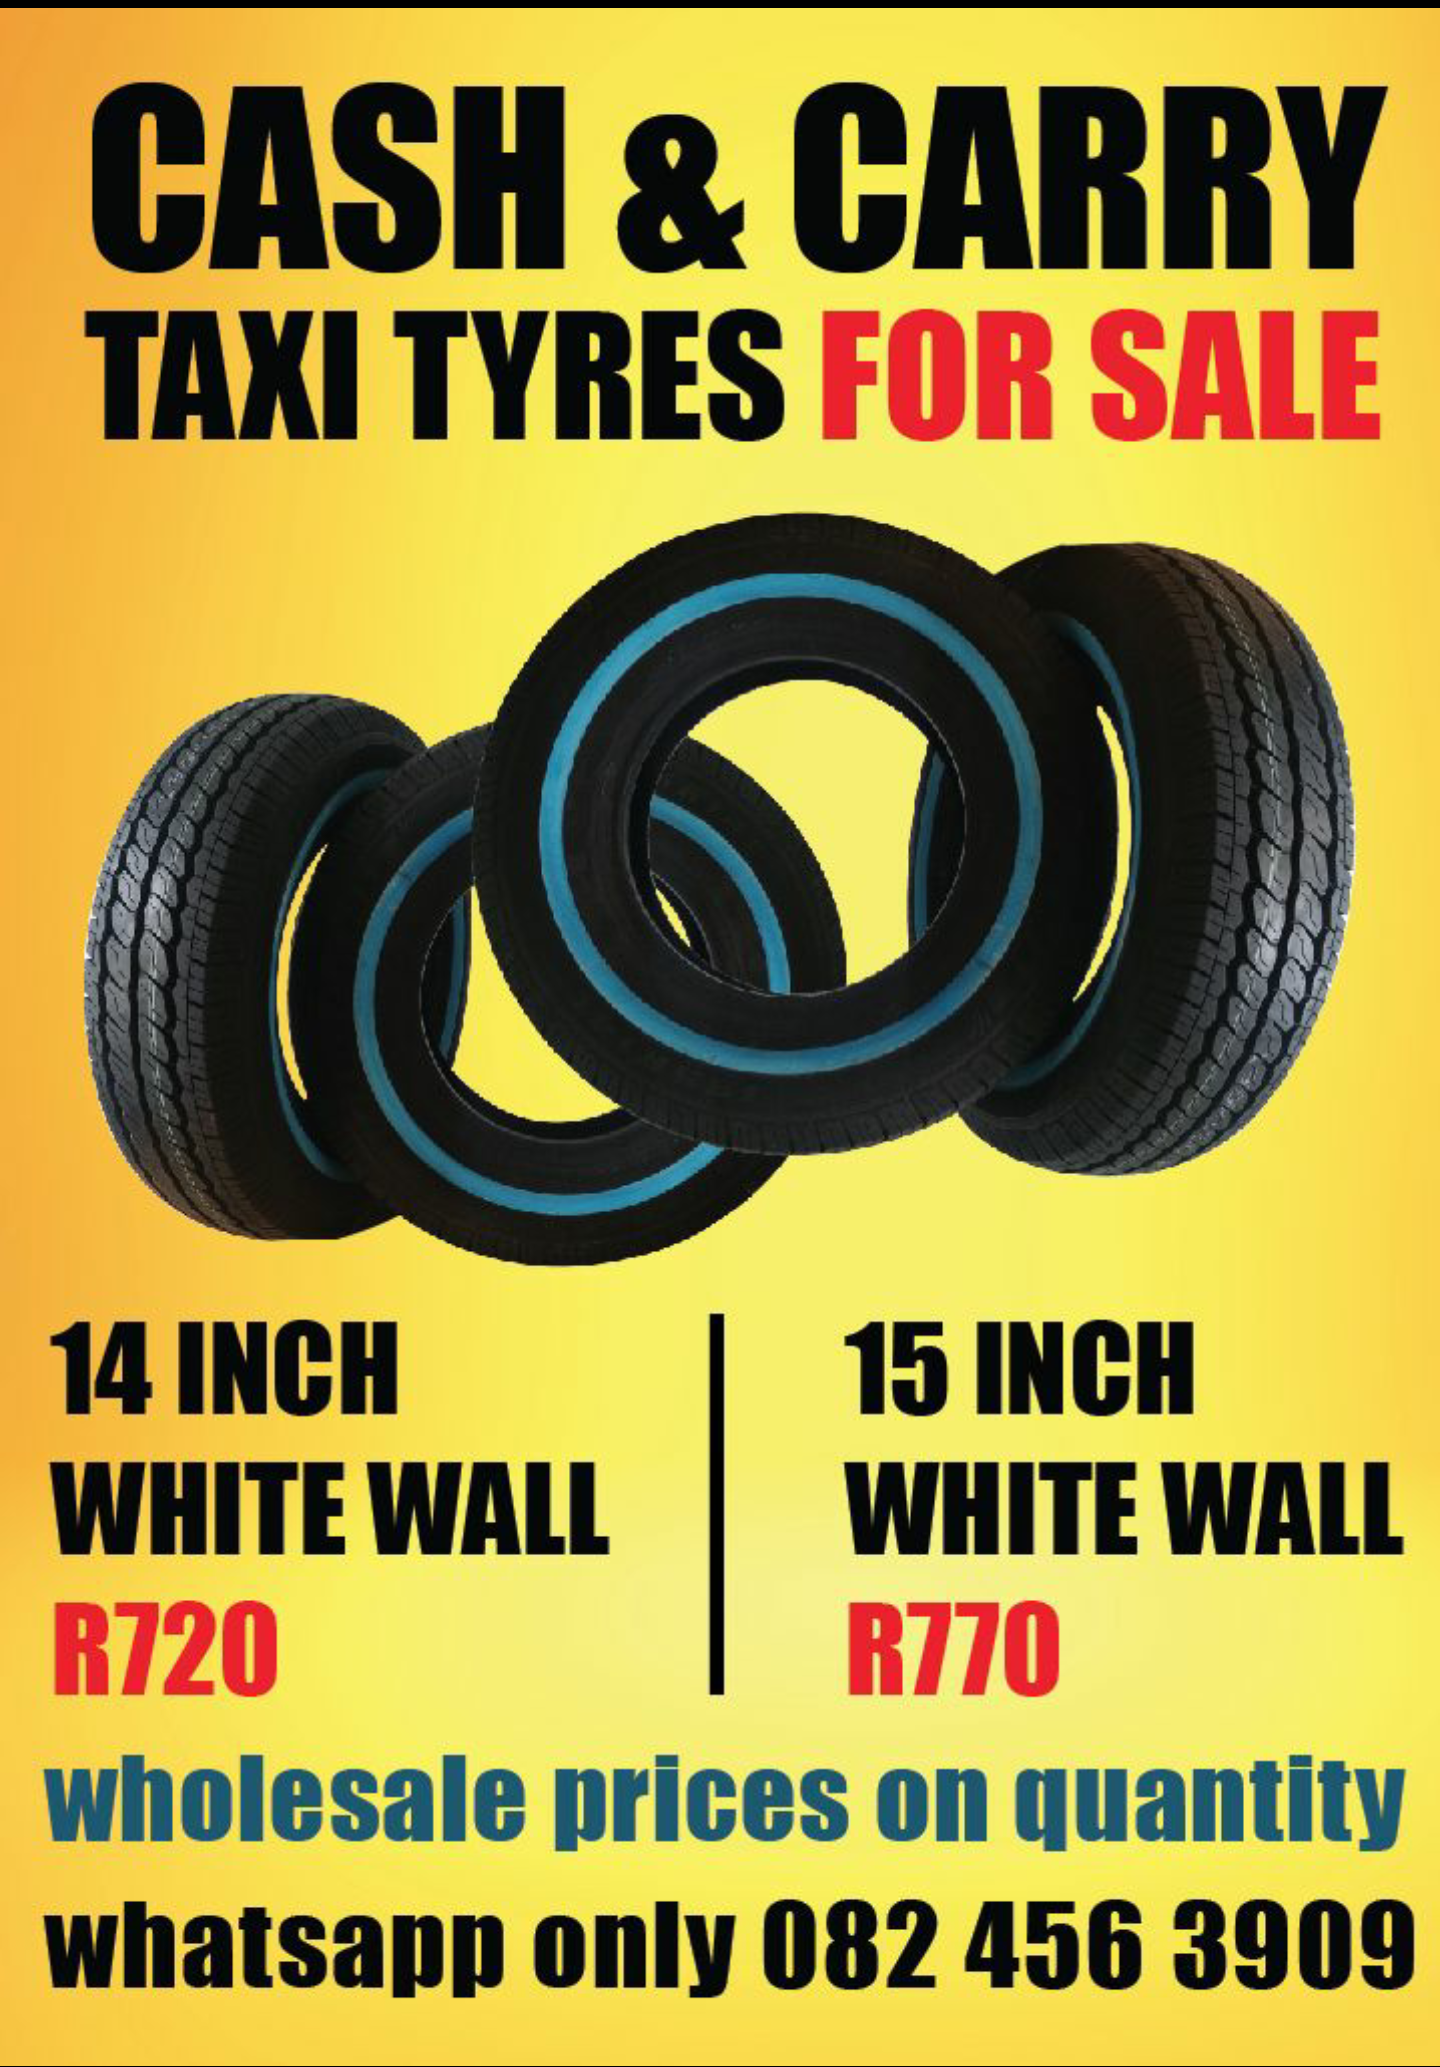 TAXI TYRES CASH & CARRY